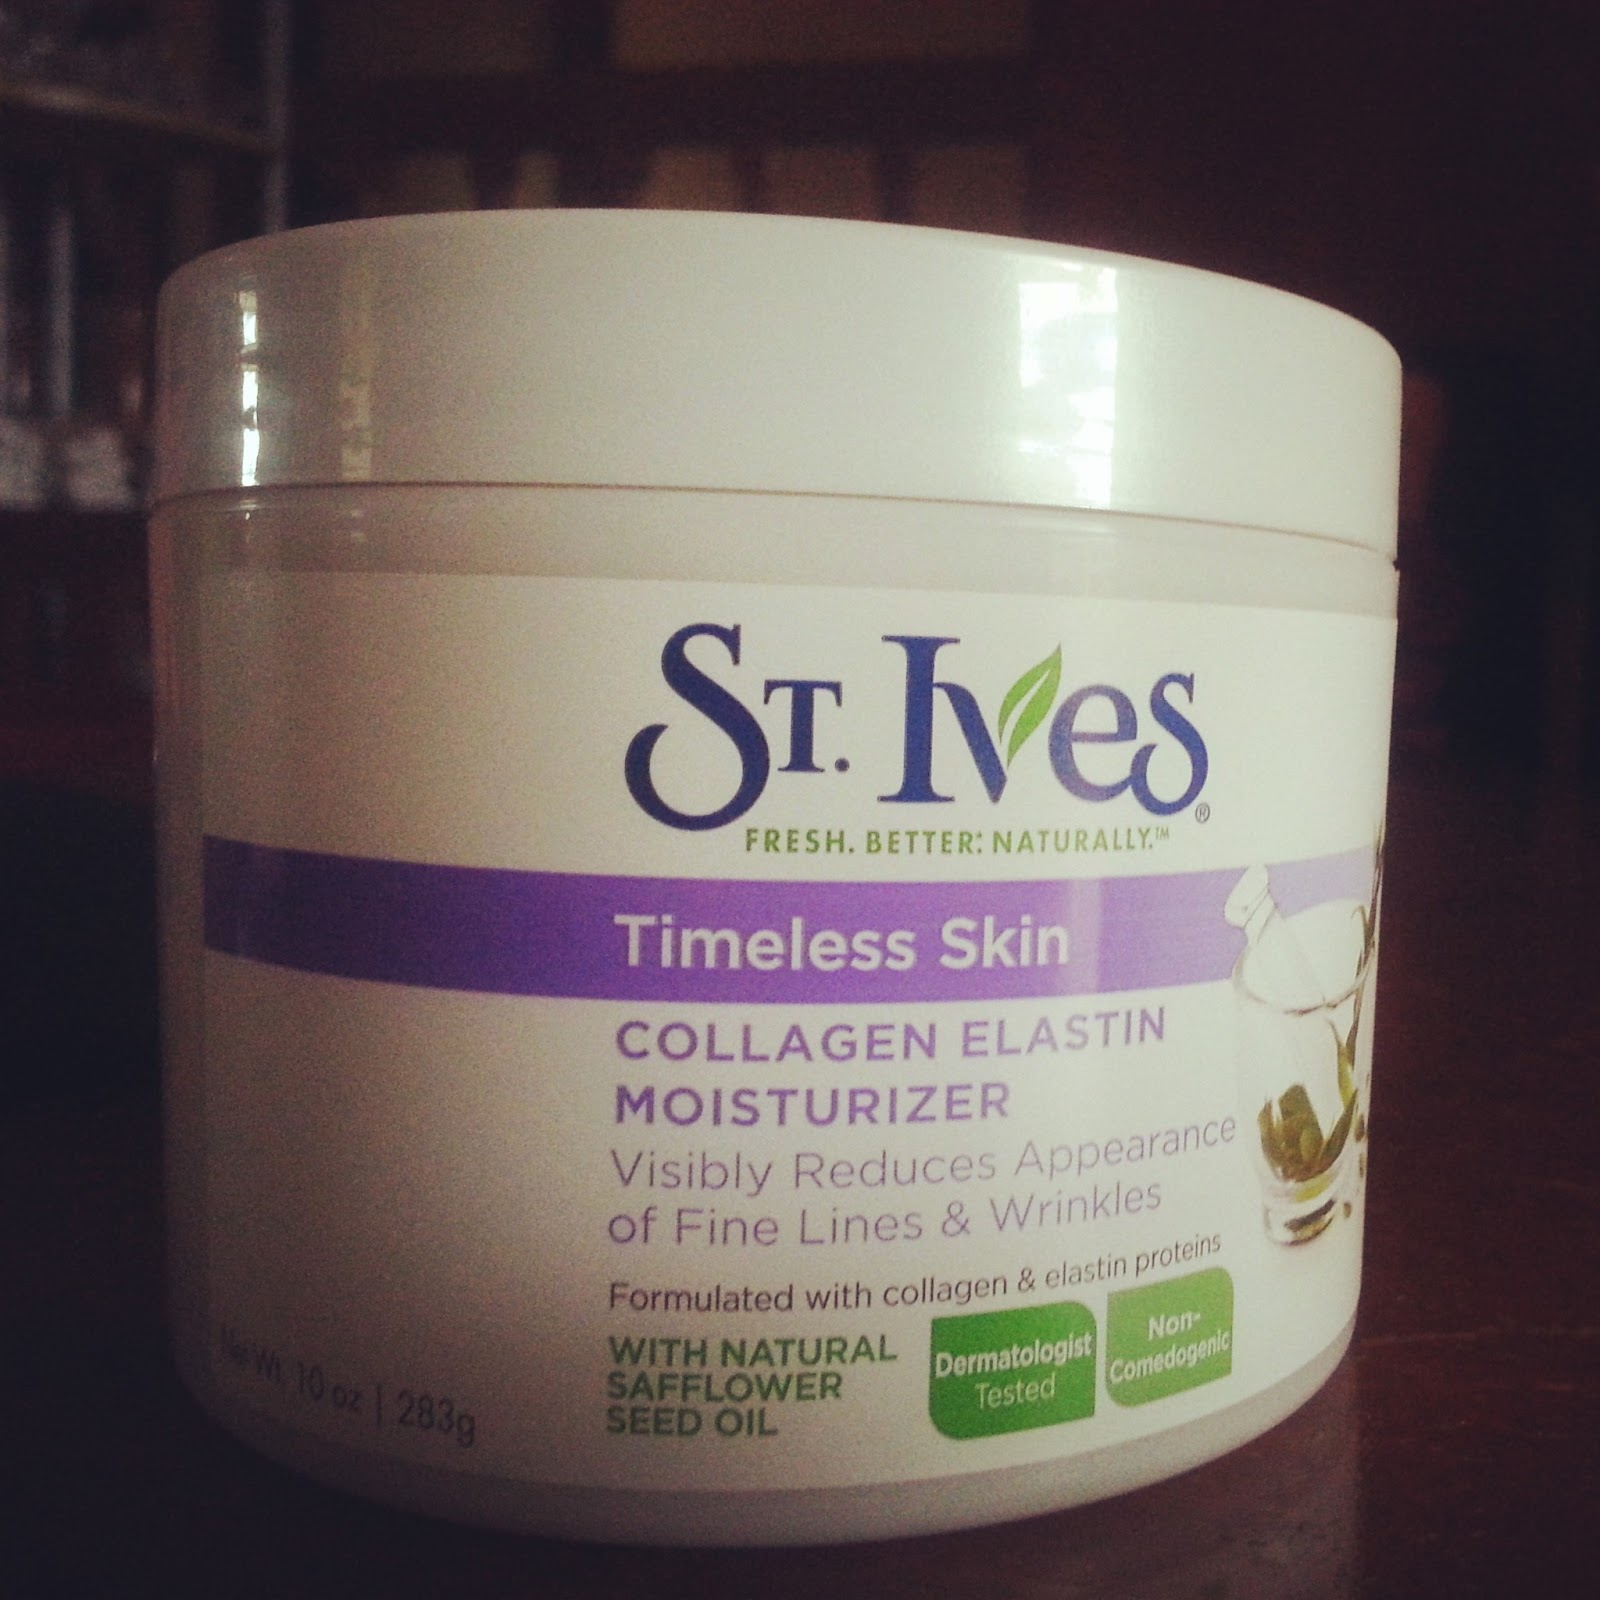 St ives timeless skin moisturizer reviews